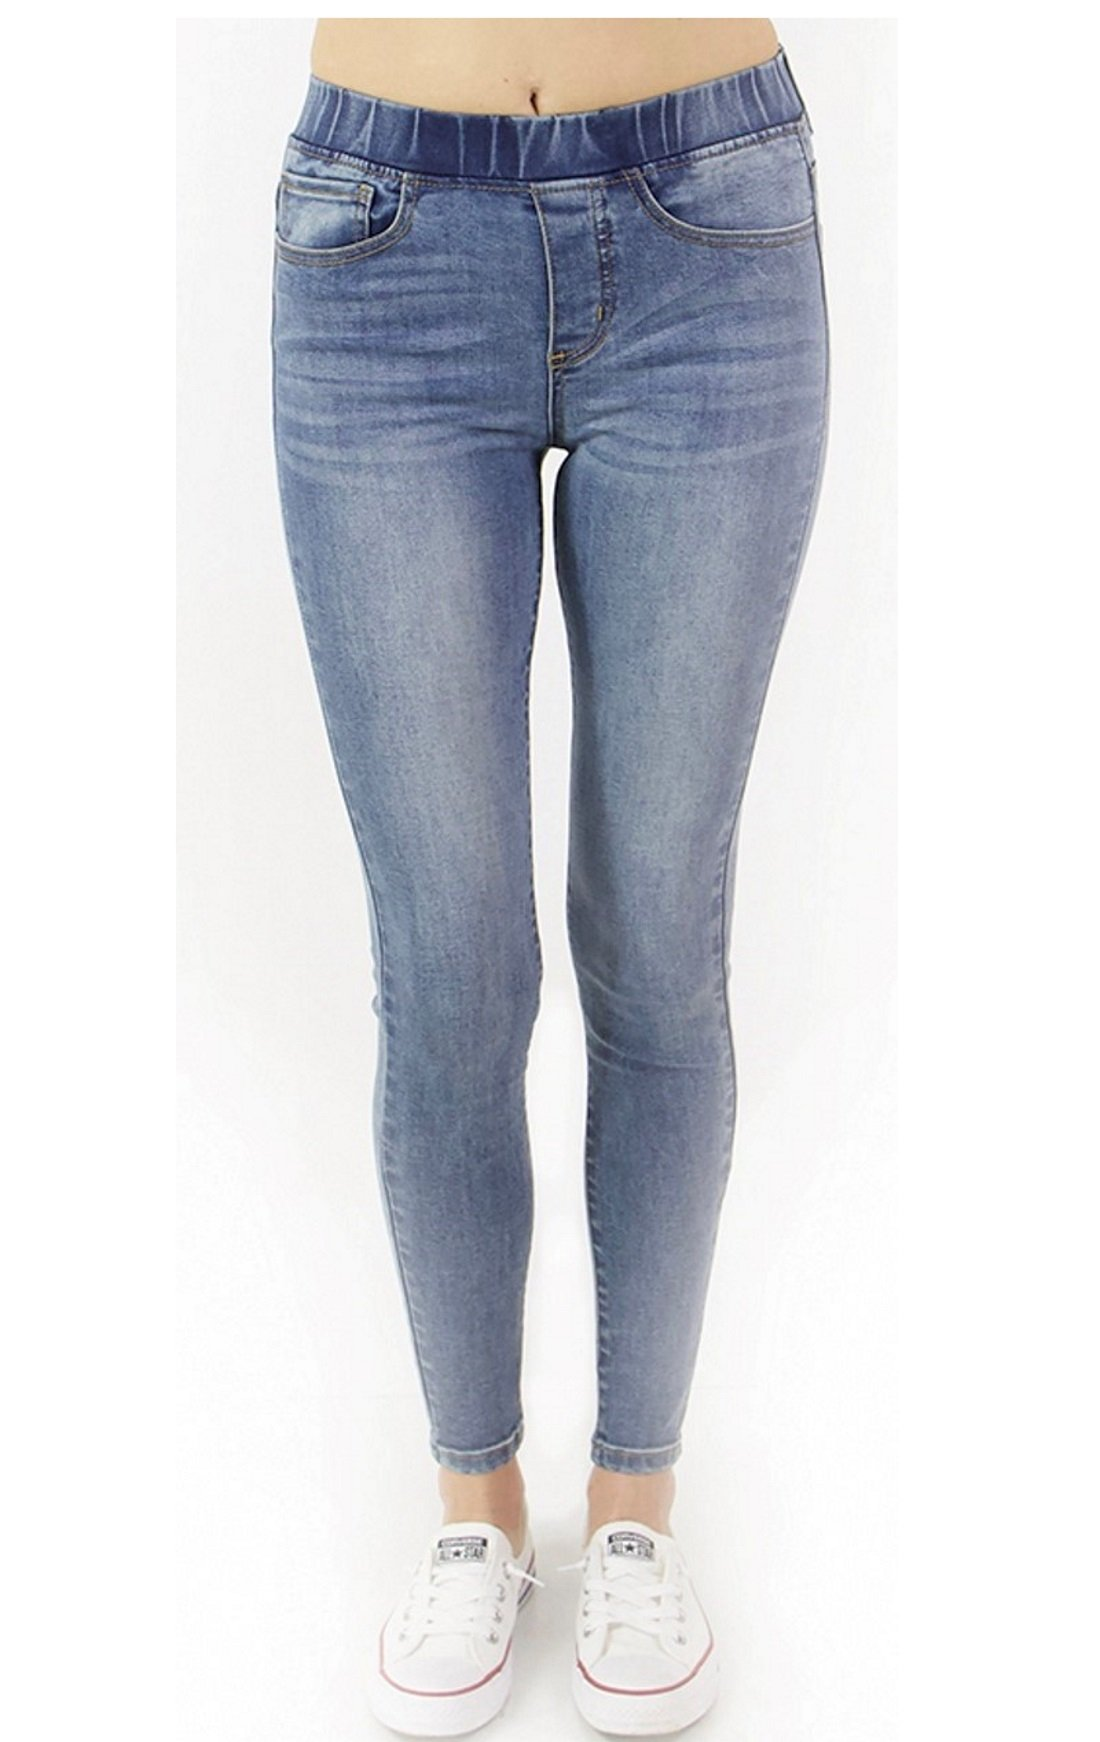 Grace and Lace Women's Classic Mid-Rise Pull on Jeggings (Medium)